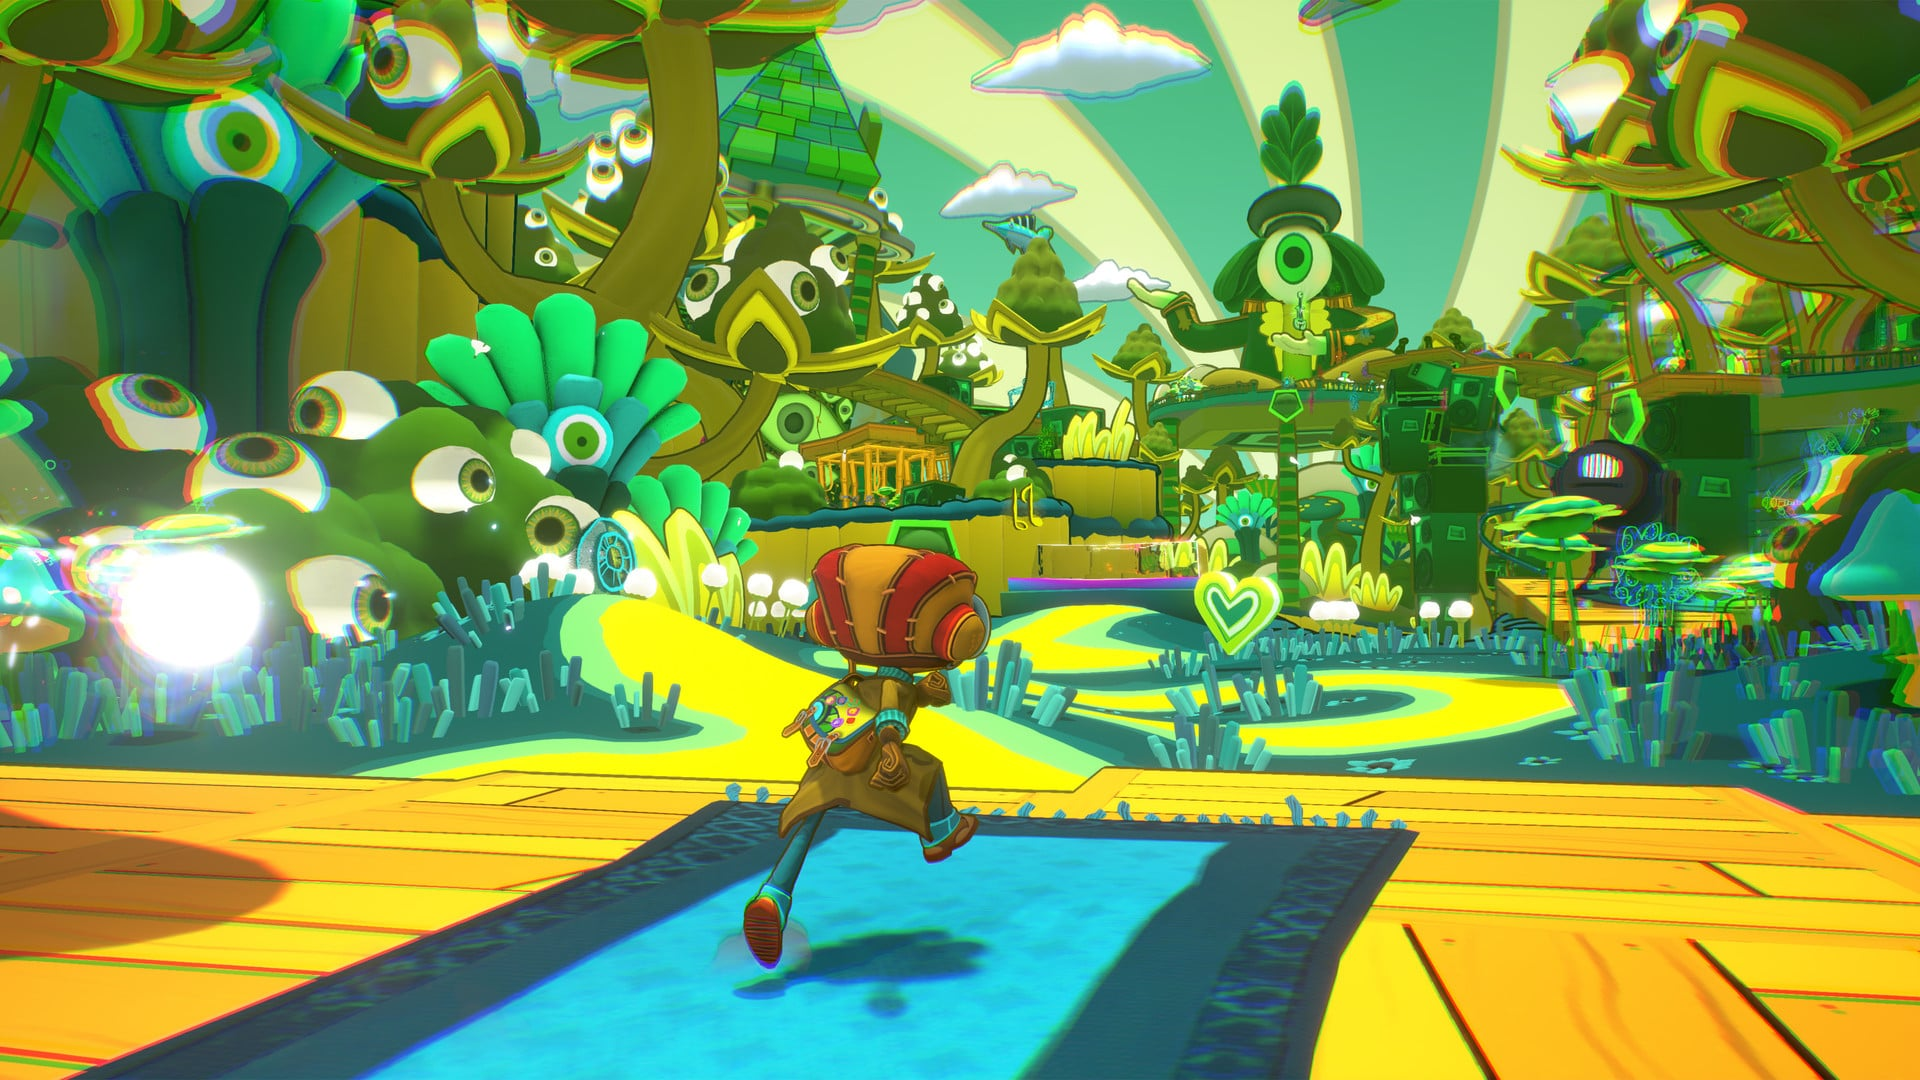 Double Fine Psychonauts 2 perfect timing for mental healing power fantasy after all these years and amid COVID pandemic